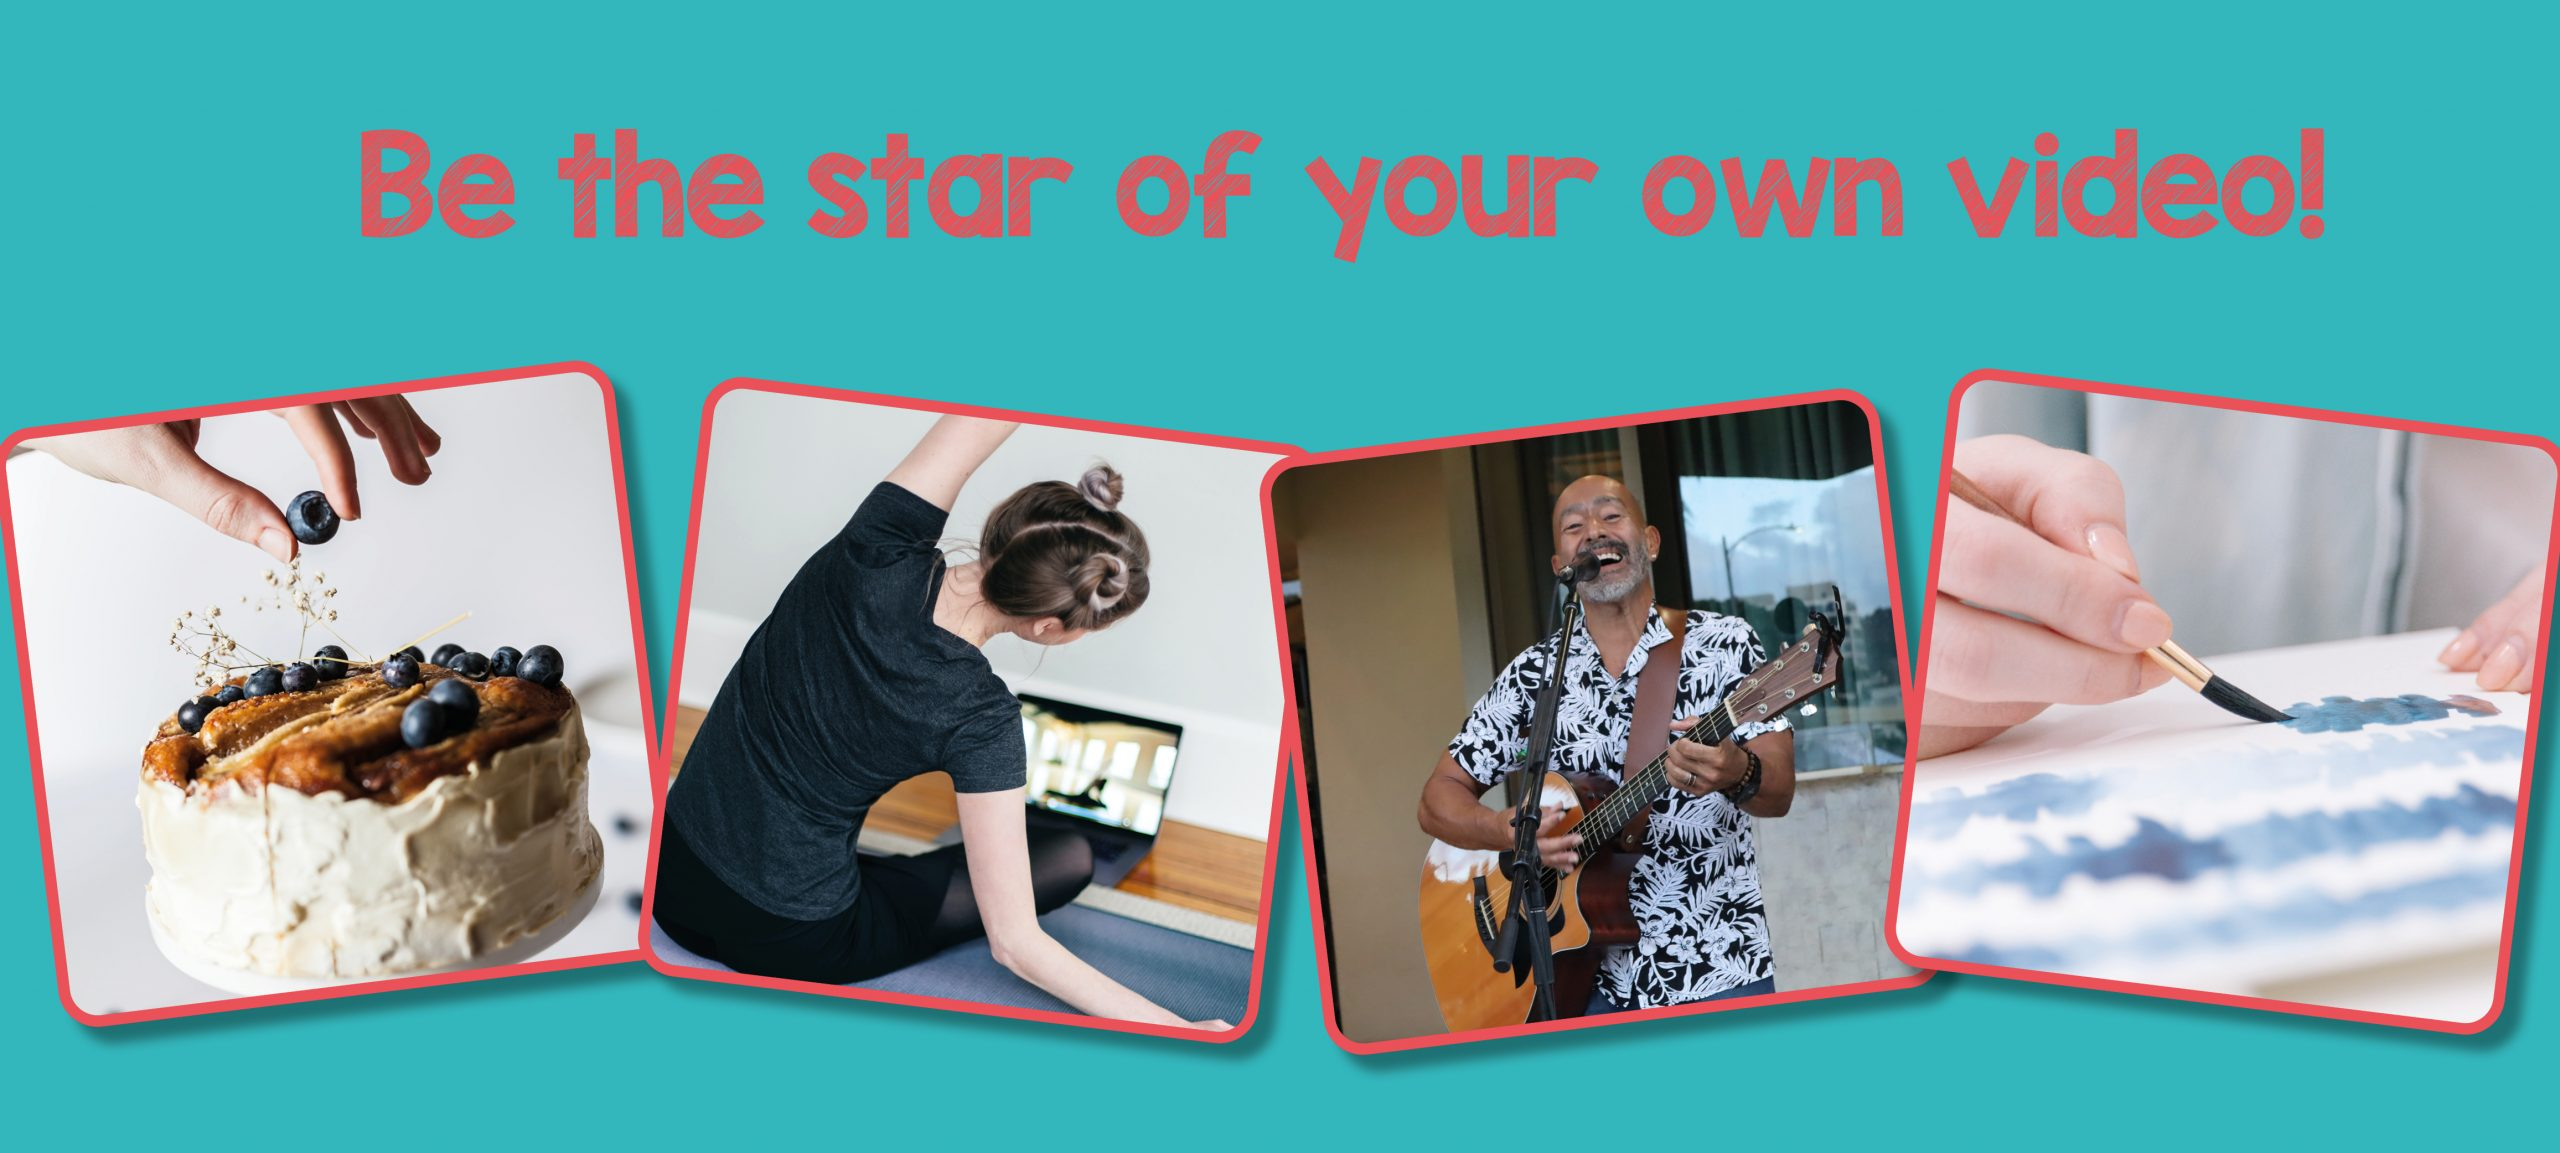 Be the star of your own video…and share your skills!